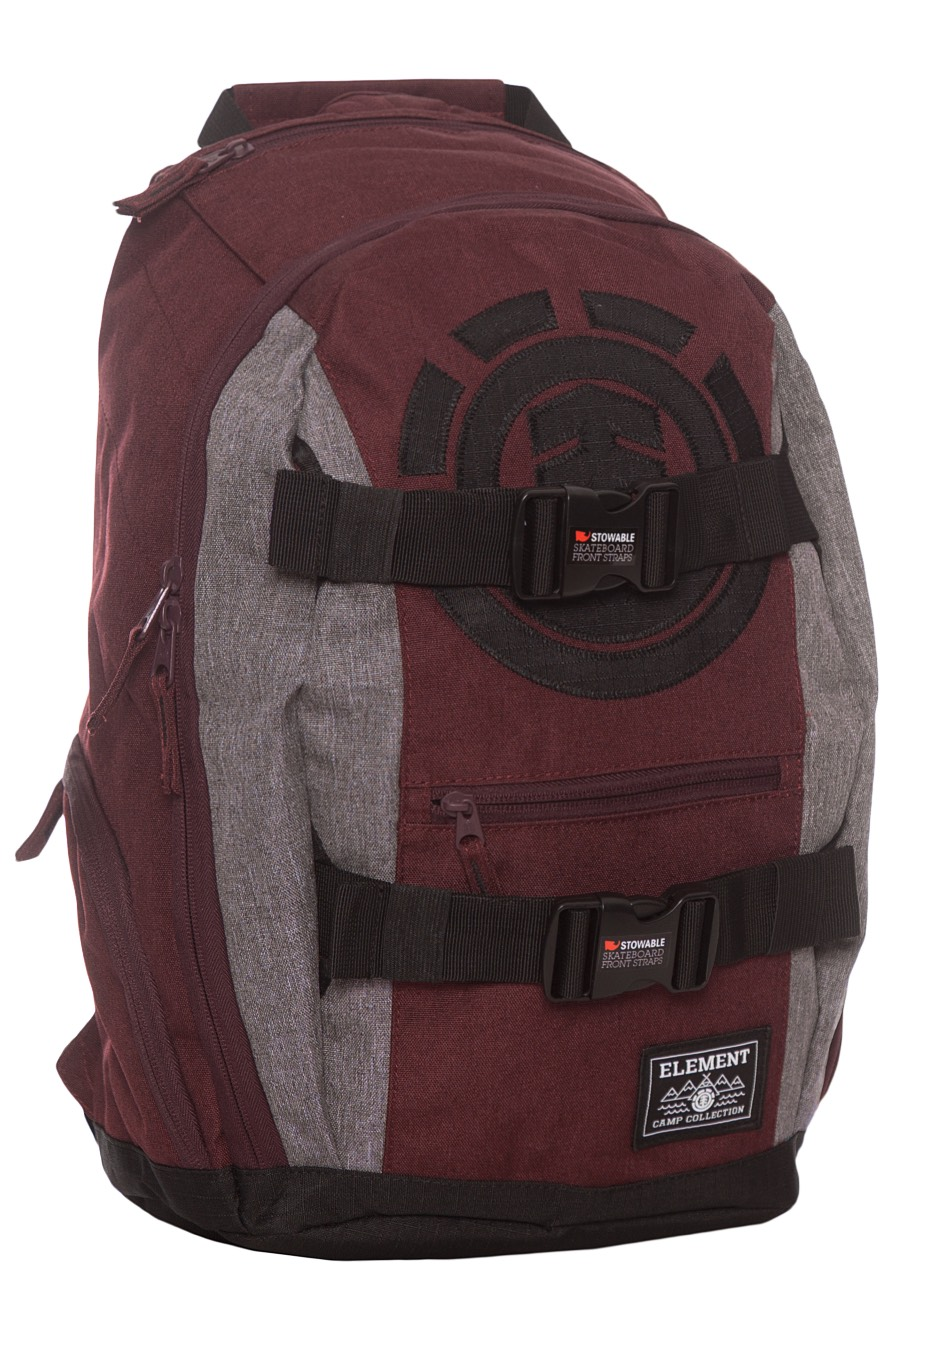 9f4de4092776 Element - Mohave Napa Heather - Backpack - Impericon.com UK